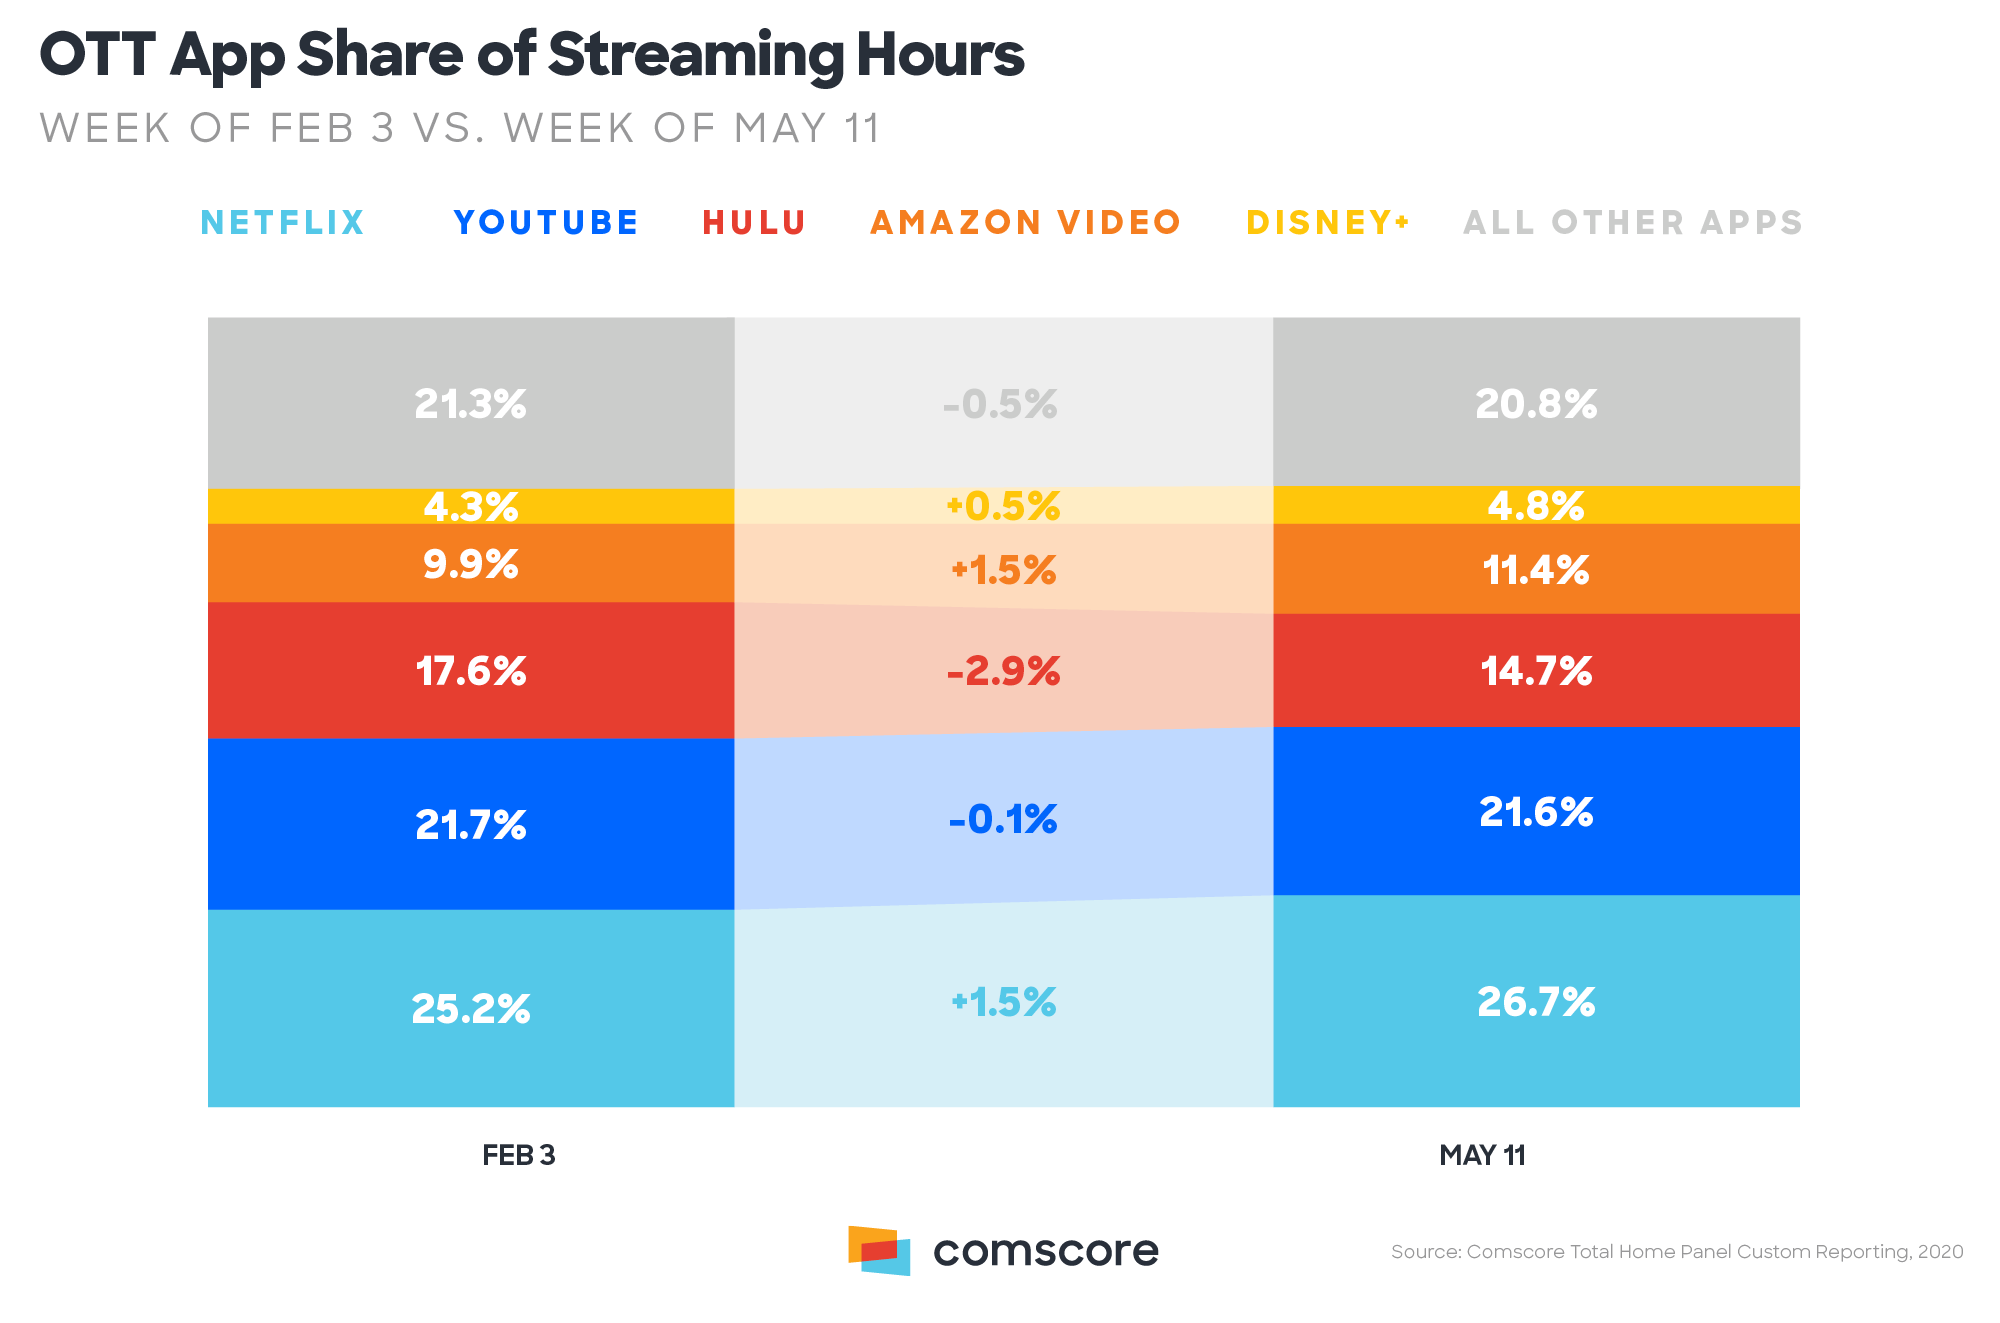 OTT App Share of Streaming Hours